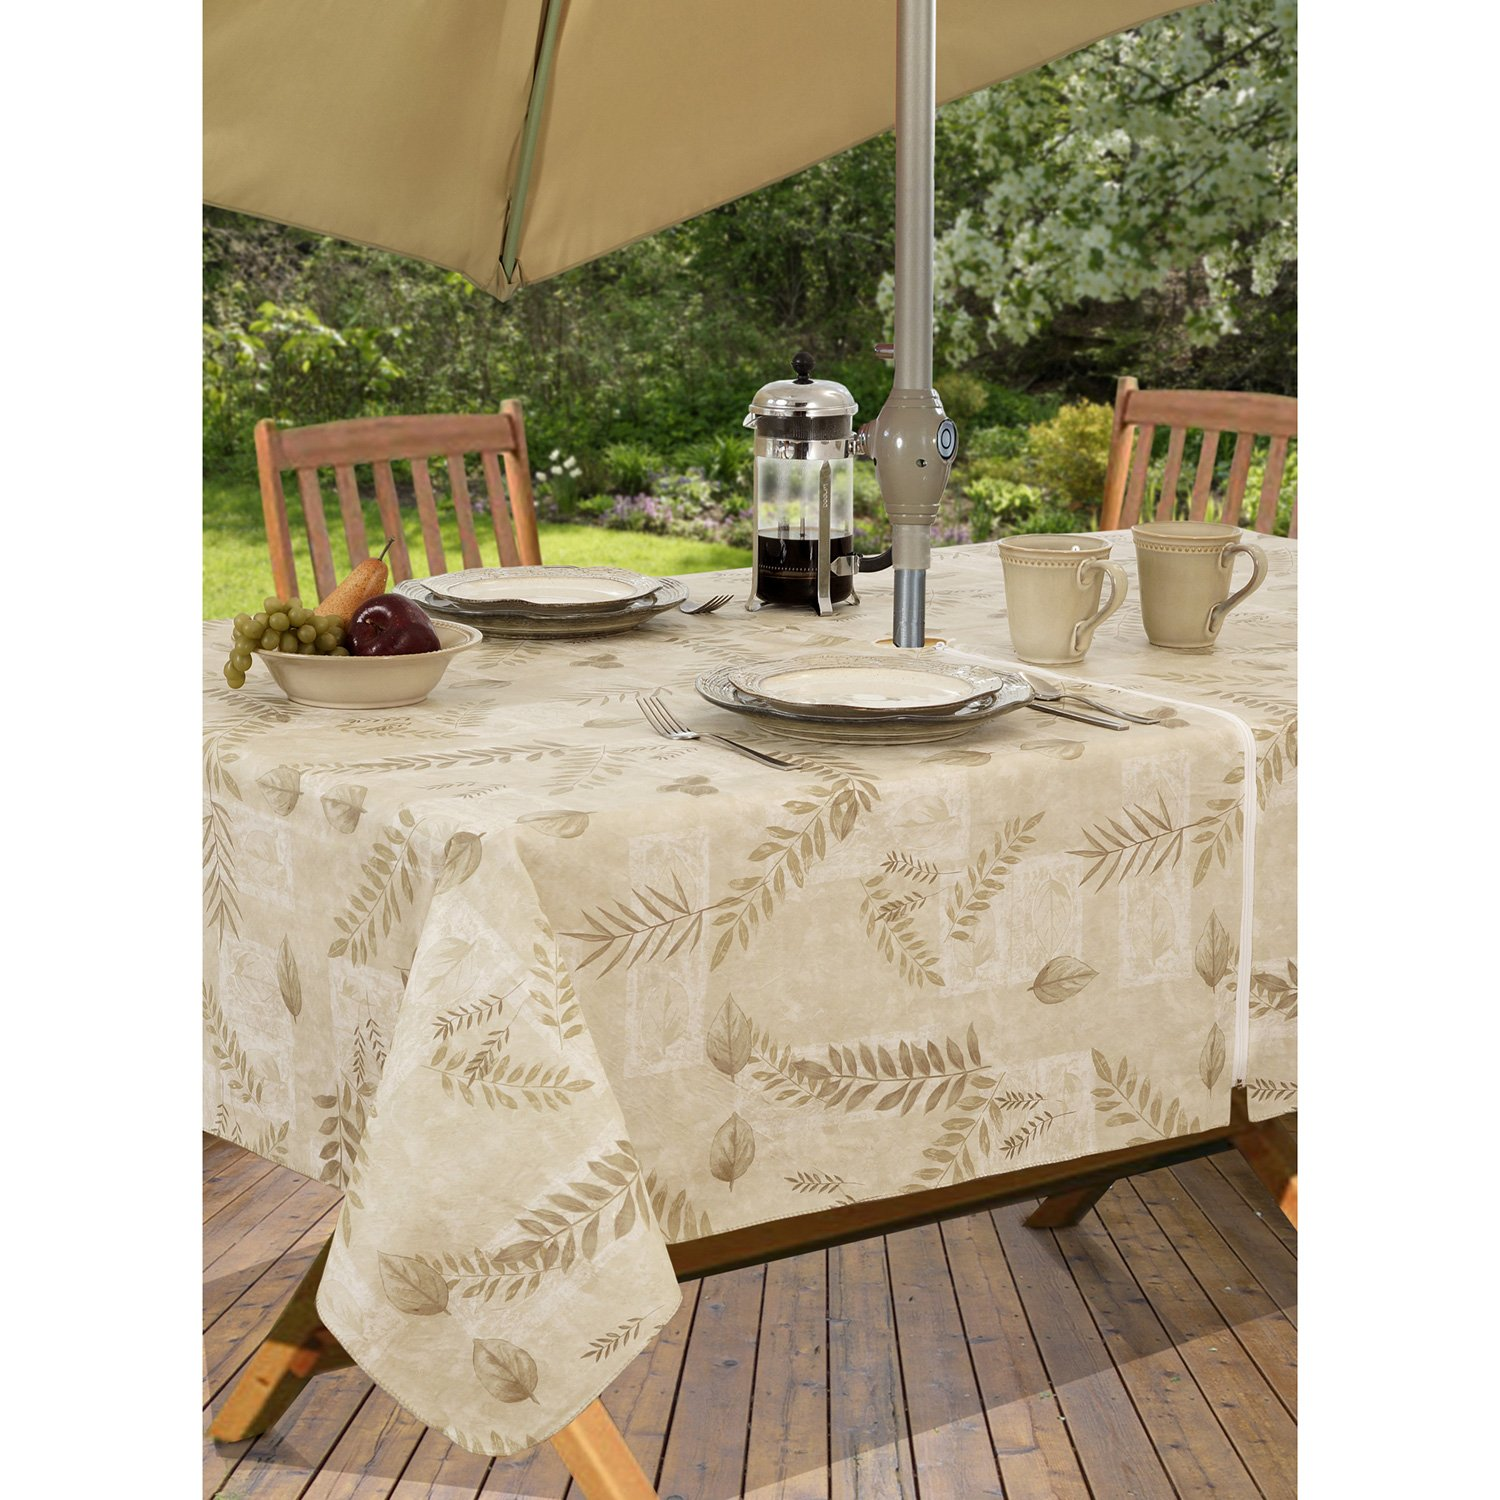 Boxed Fern Vinyl Table Linen Indoor Outdoor, 18-Inch by 11.75-Inch Placemats, Sage 4-Pack Newbridge